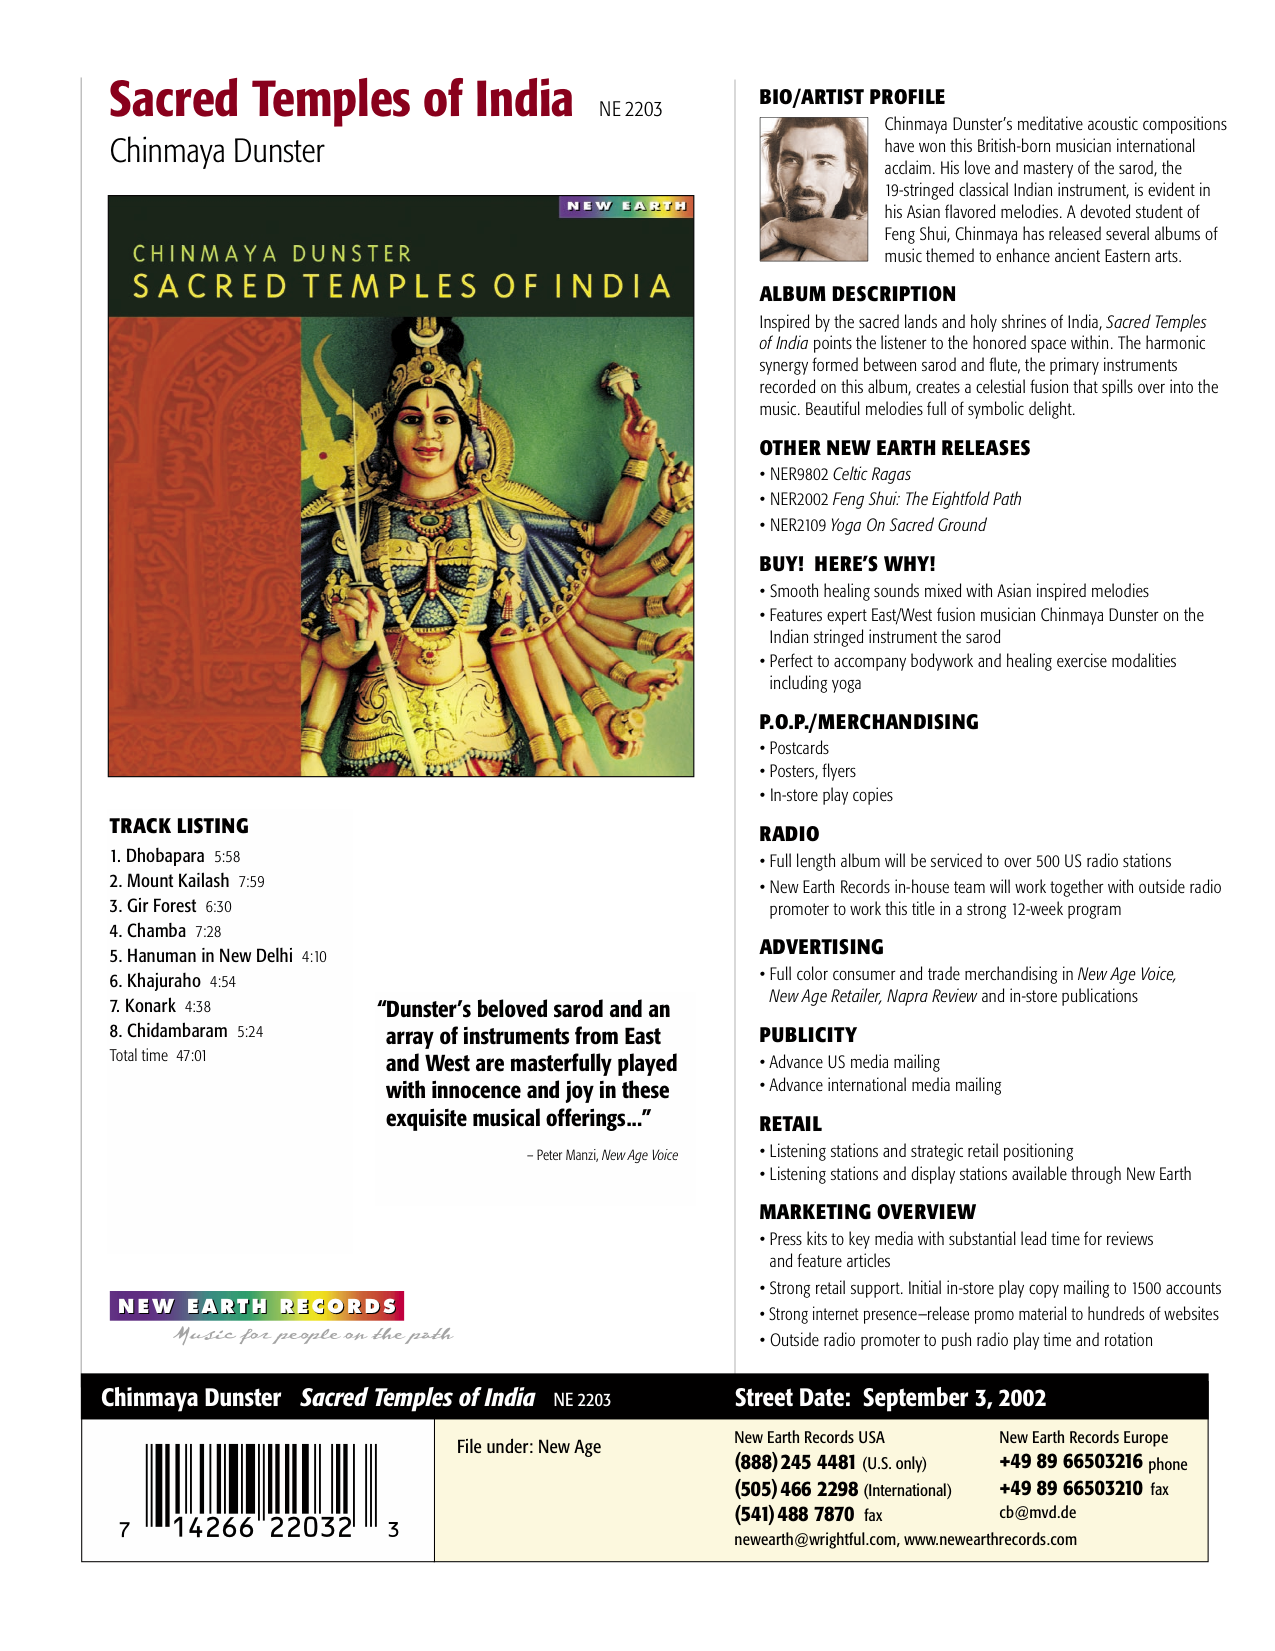 Sacred Temples of India - New Earth Records